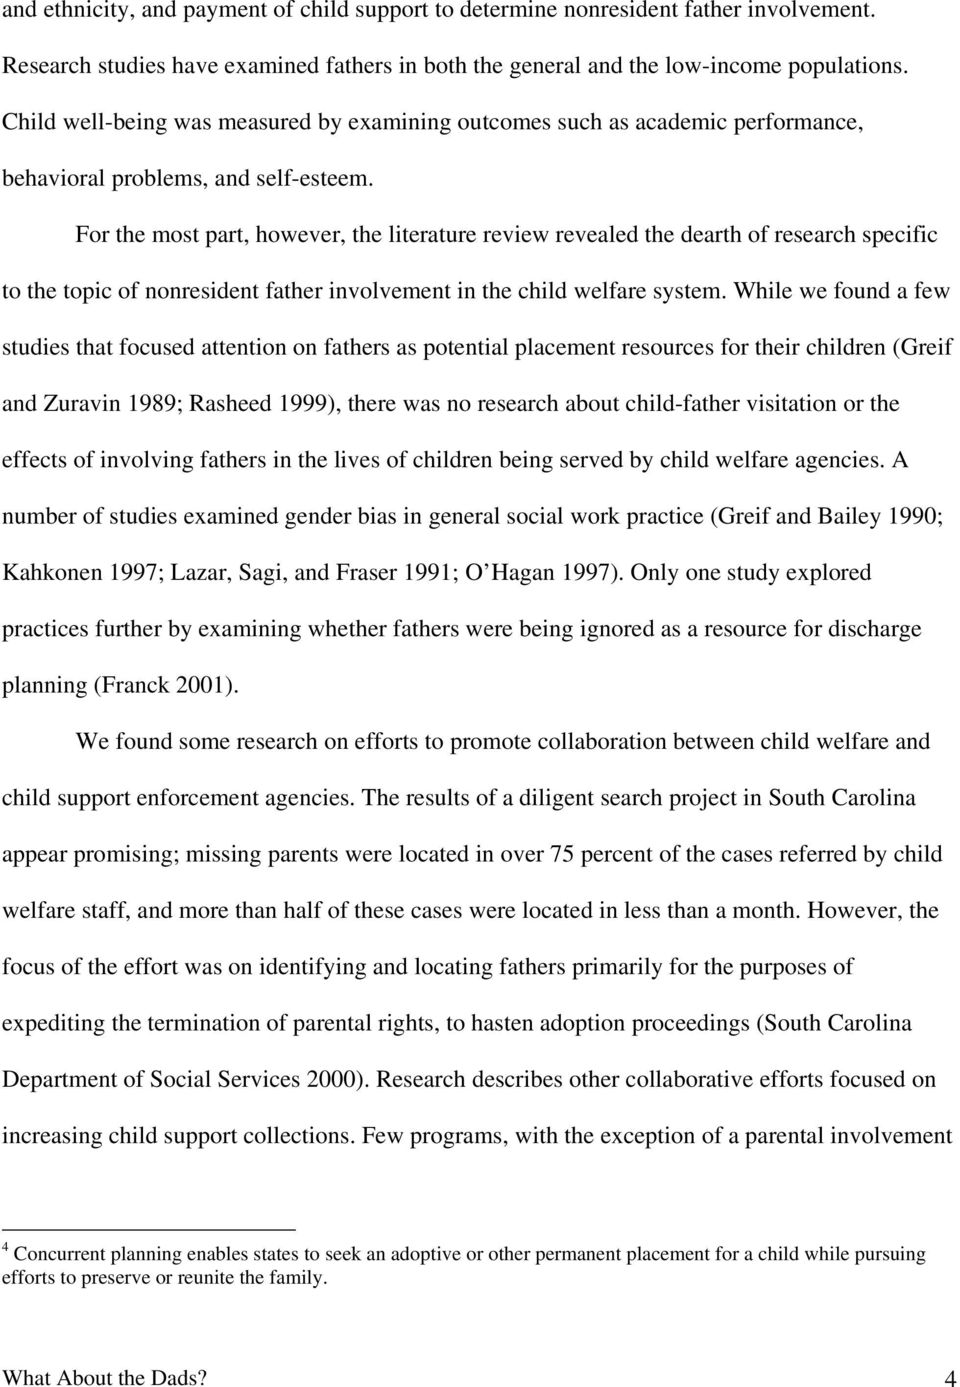 For the most part, however, the literature review revealed the dearth of research specific to the topic of nonresident father involvement in the child welfare system.